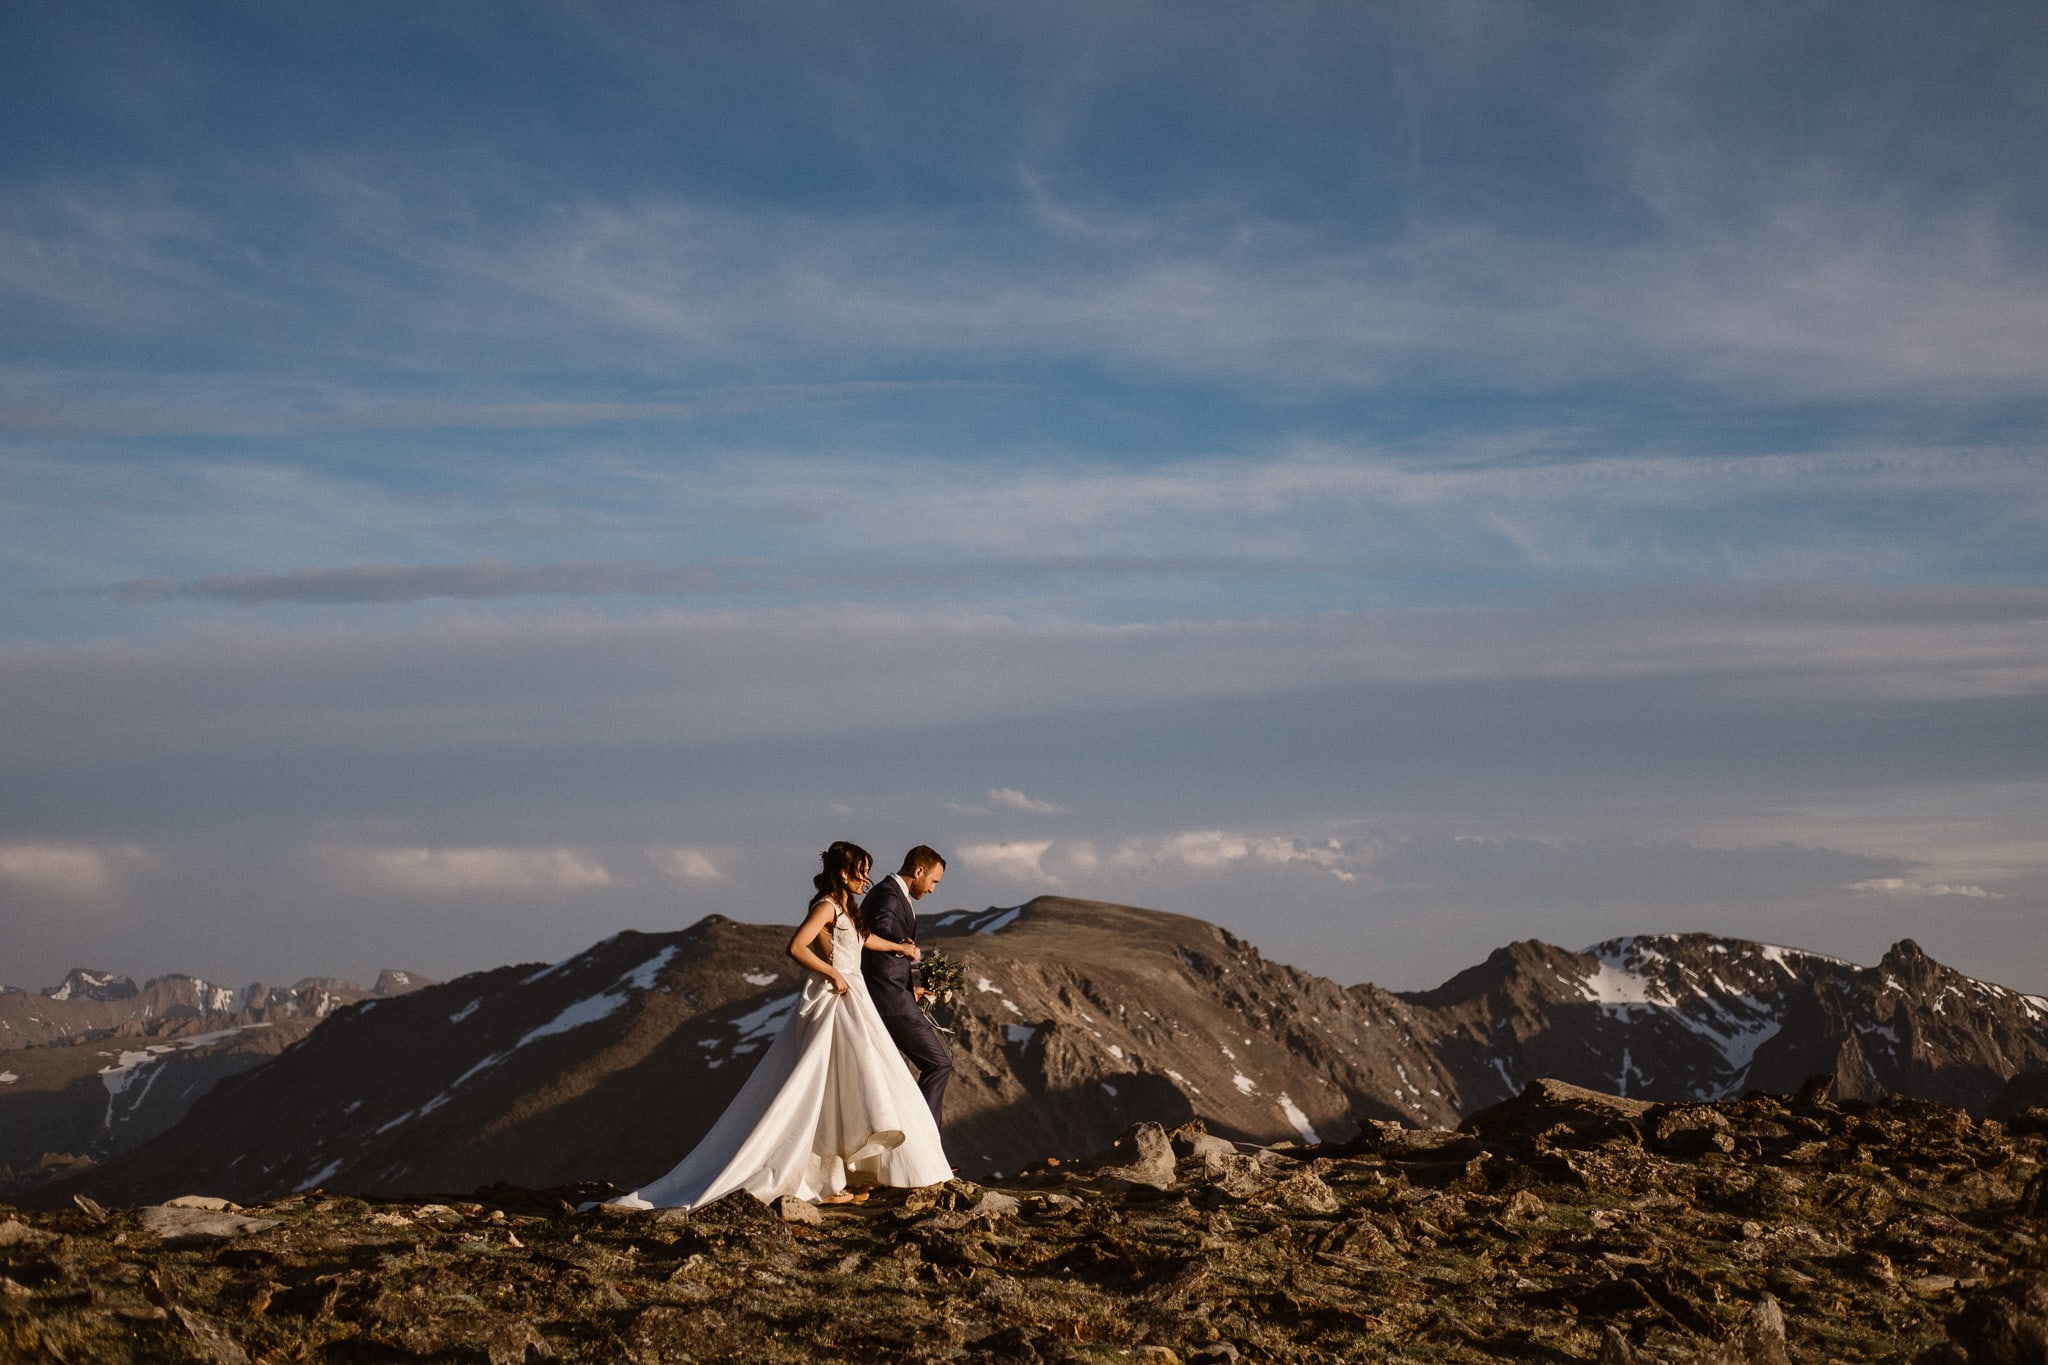 Trail Ridge Road Elopement Photographer, Colorado adventure wedding photography, Rocky Mountain National Park weddings, best month to elope in Colorado